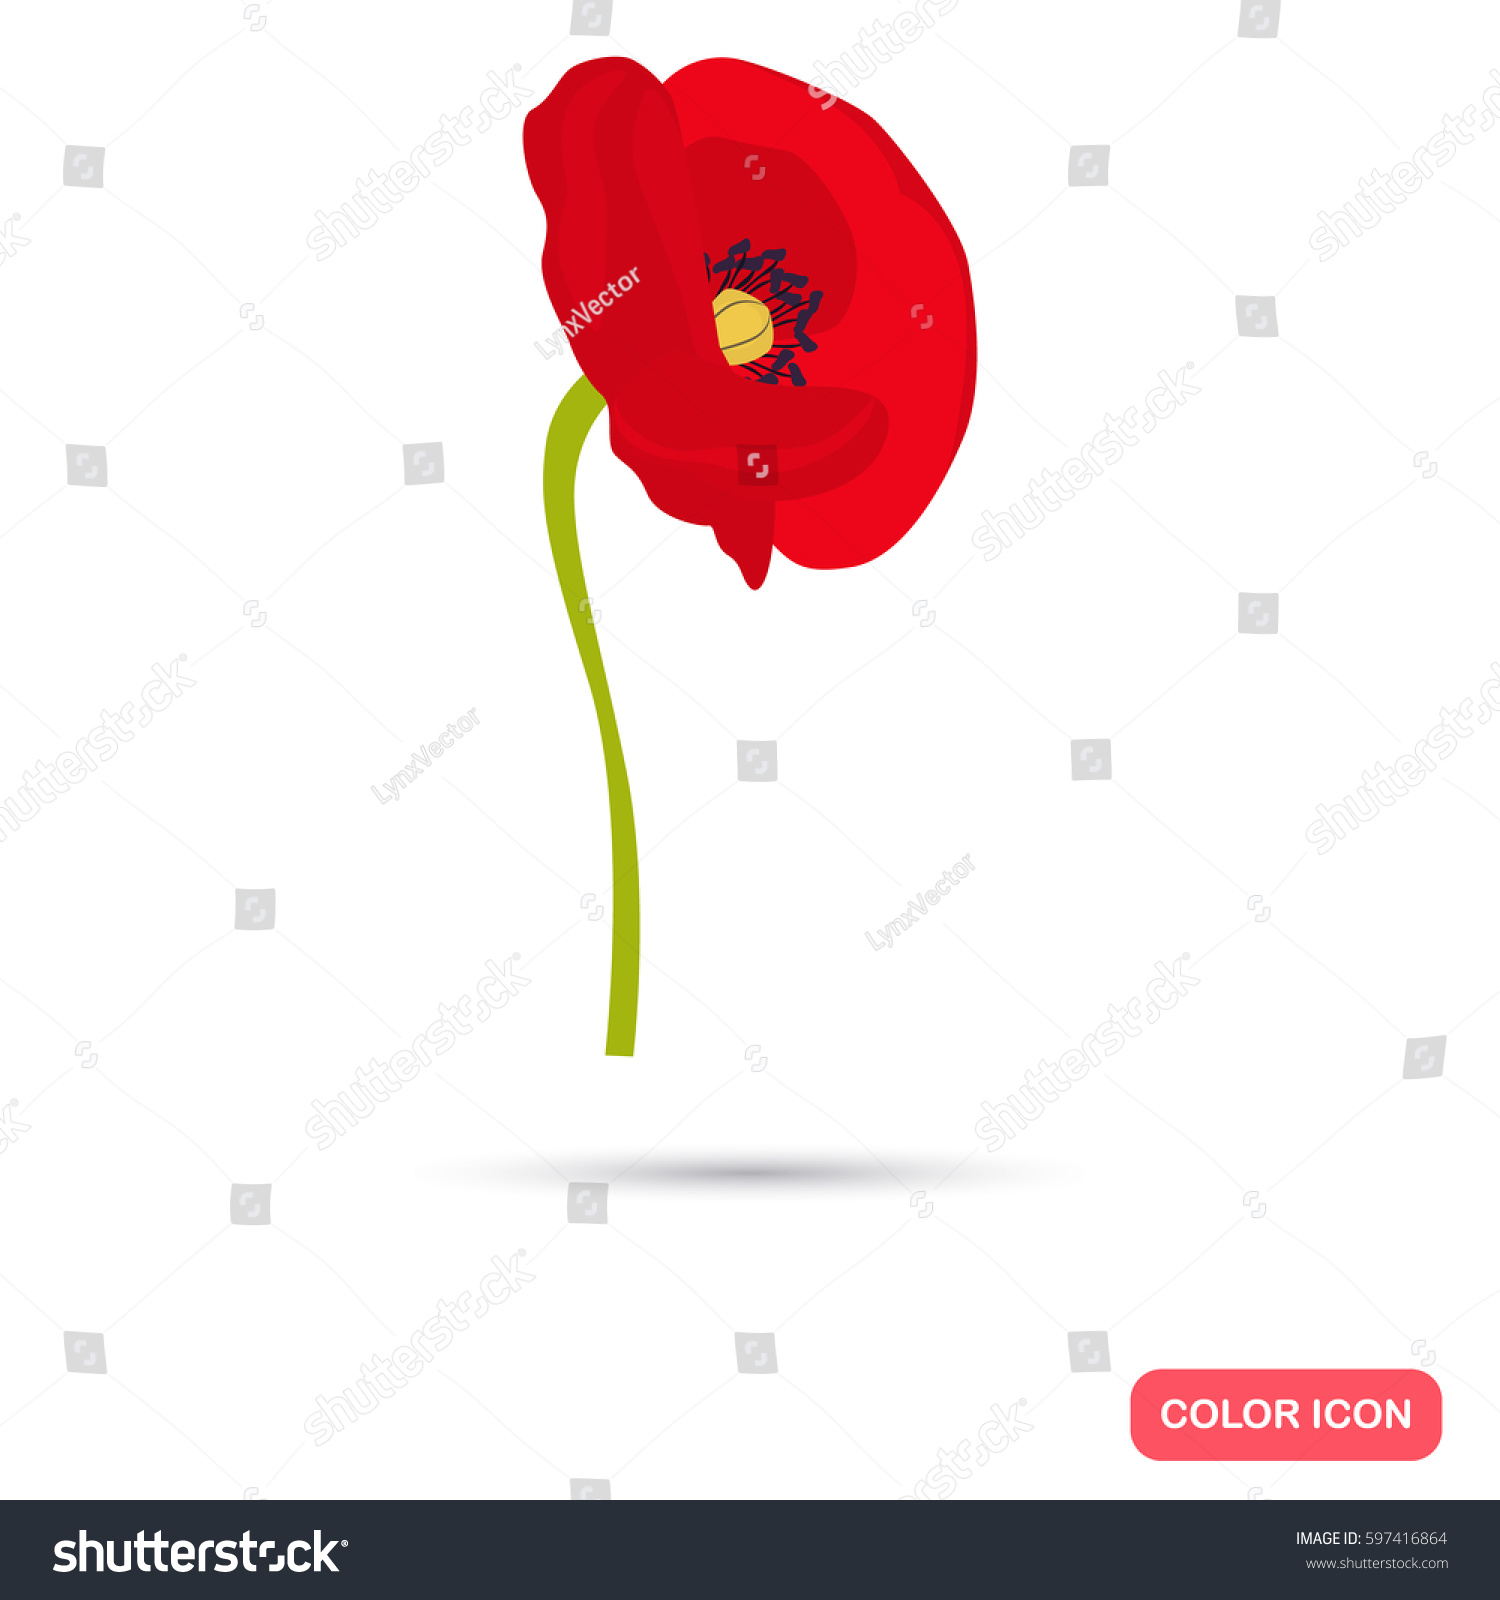 poppy color flat icon for web and mobile design